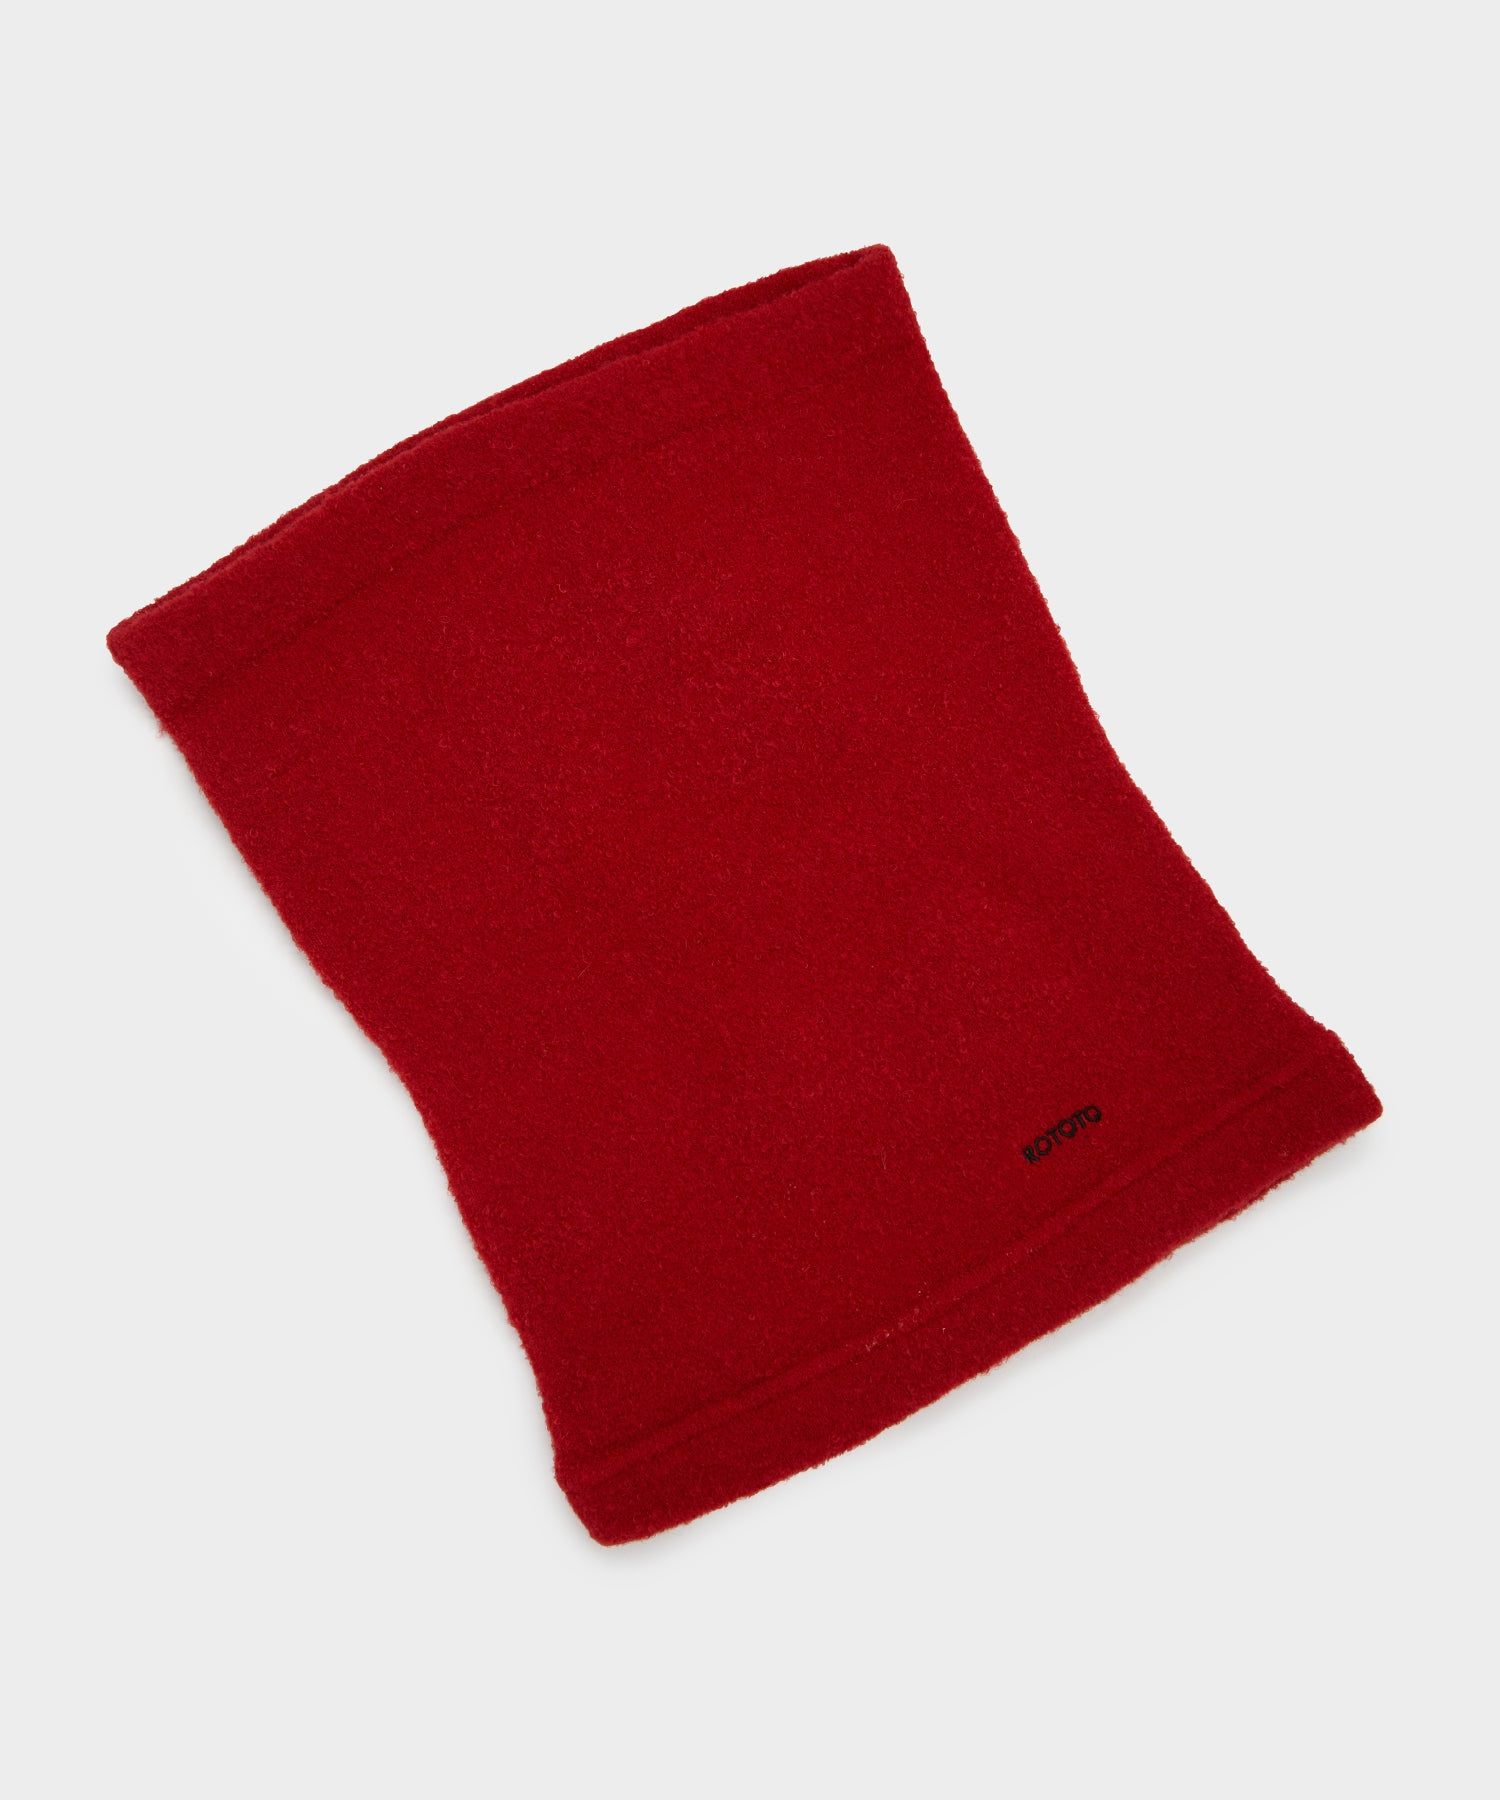 RoToTo MOF Neck Warmer in Red